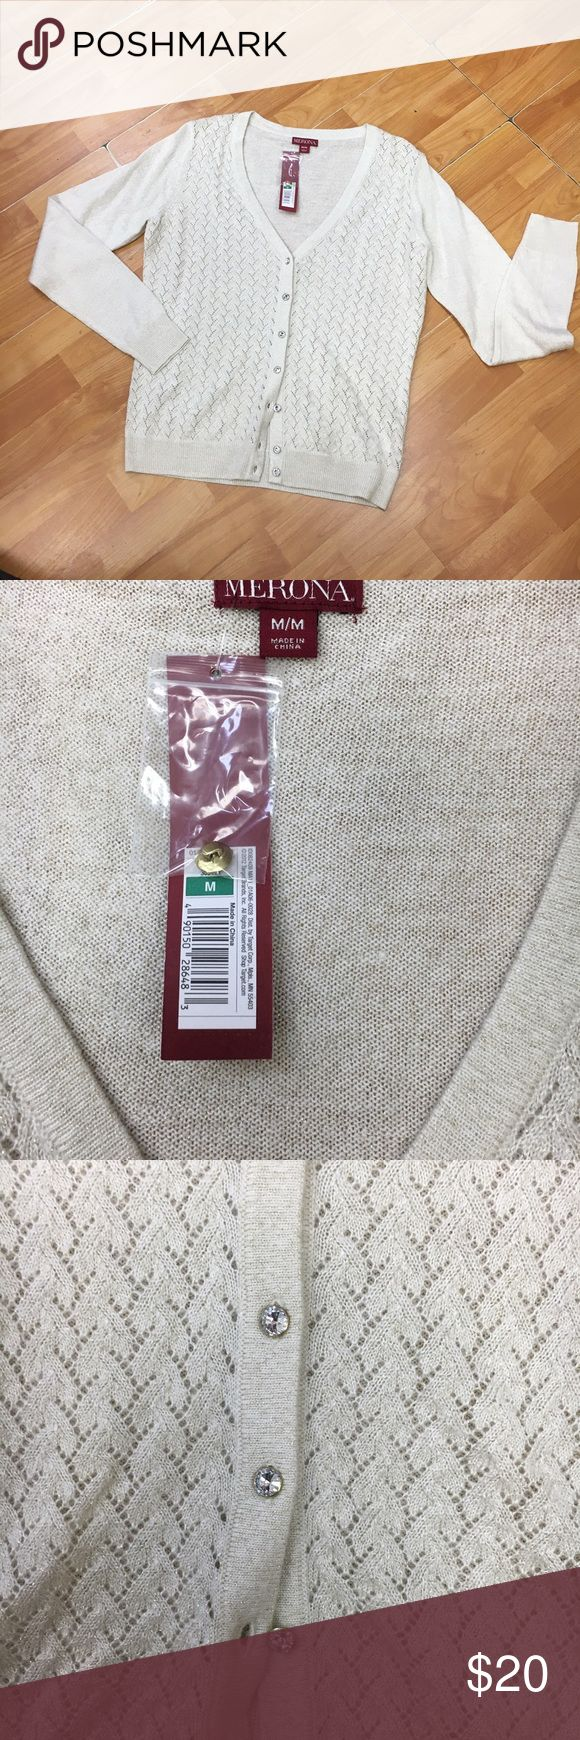 Merona Cream Gold Cardigan Jewel Buttons NEW NWT M Merona Cream Gold Cardigan Jewel Buttons NEW NWT M  Beautiful and delicate.  Very soft.  New with tags. Merona Sweaters Cardigans